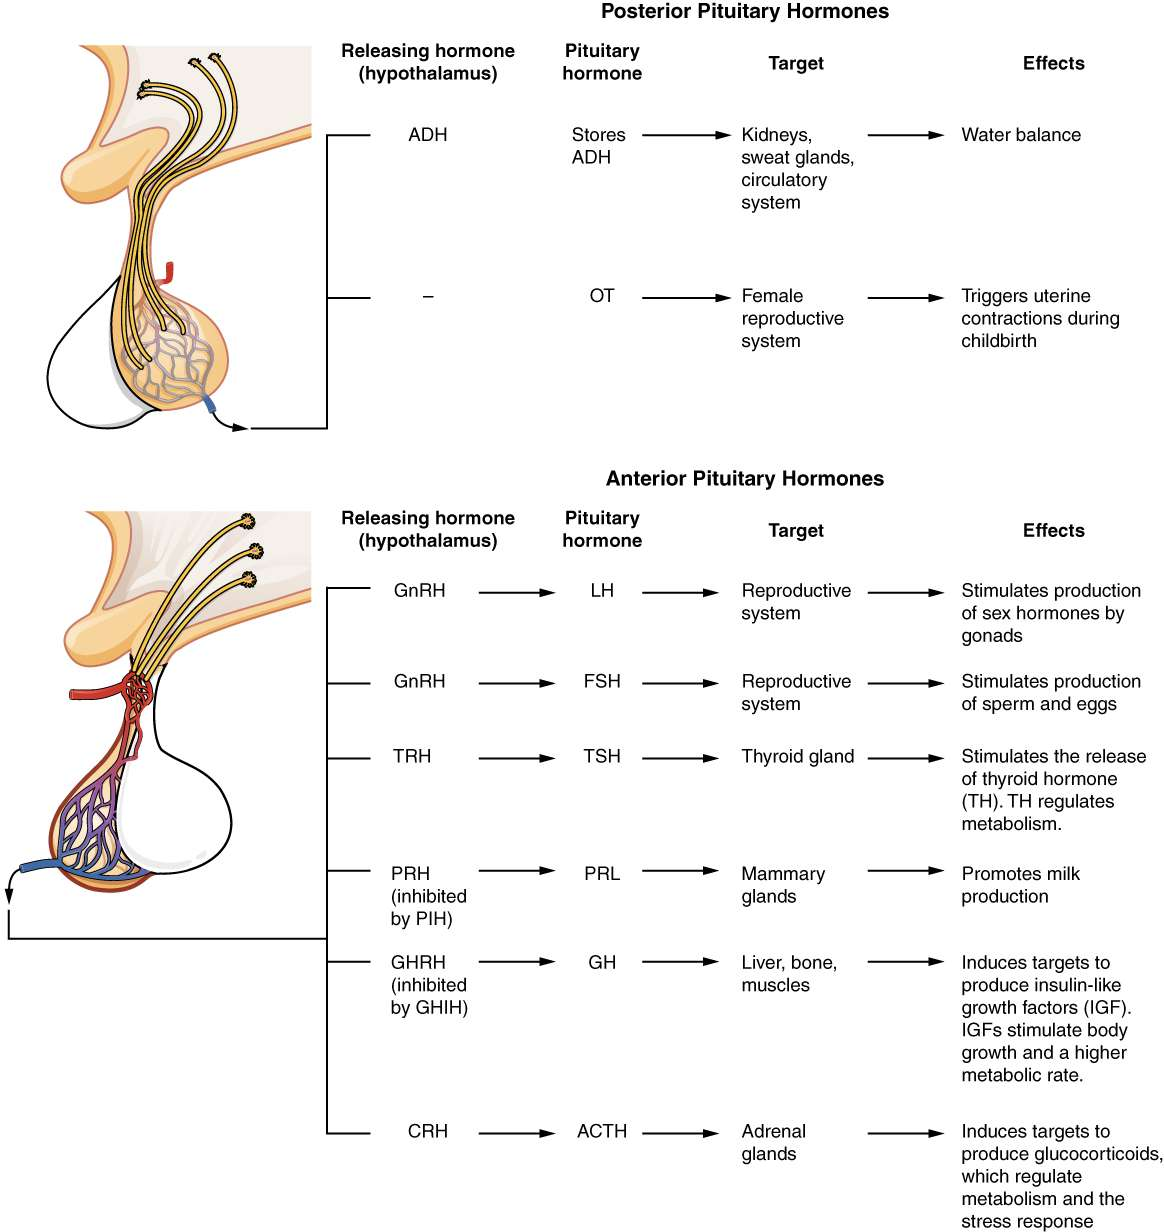 PITUITARY HORMONES AND FUNCTIONS